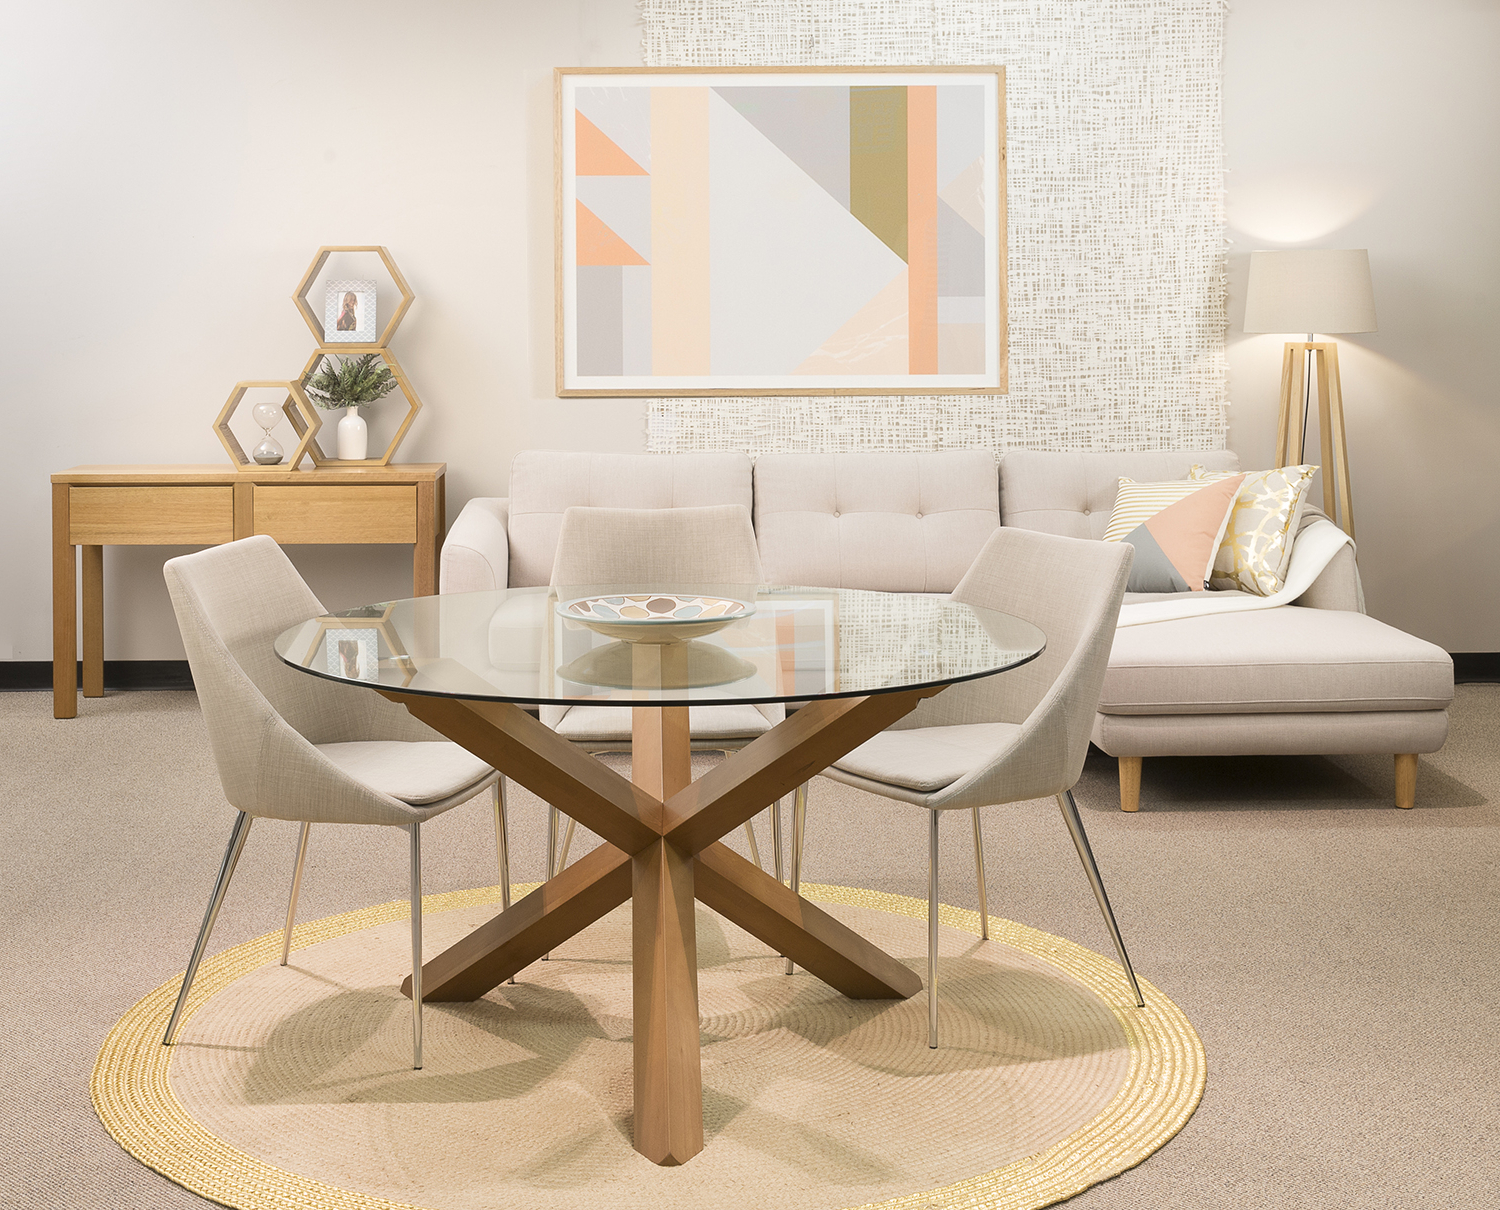 Glass Top Dining Table Sets Style — Doma Kitchen Cafe For Well Liked Modern Round Glass Top Dining Tables (View 30 of 30)